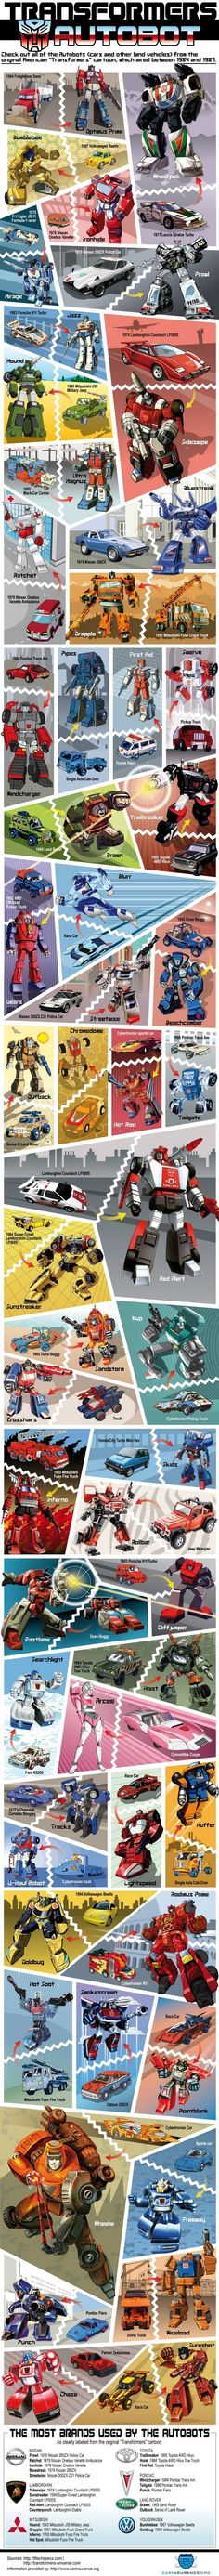 G1 Transformers Infographic - More Than Meets the Alternate Mode Transformers News Reviews Movies Comics and Toys